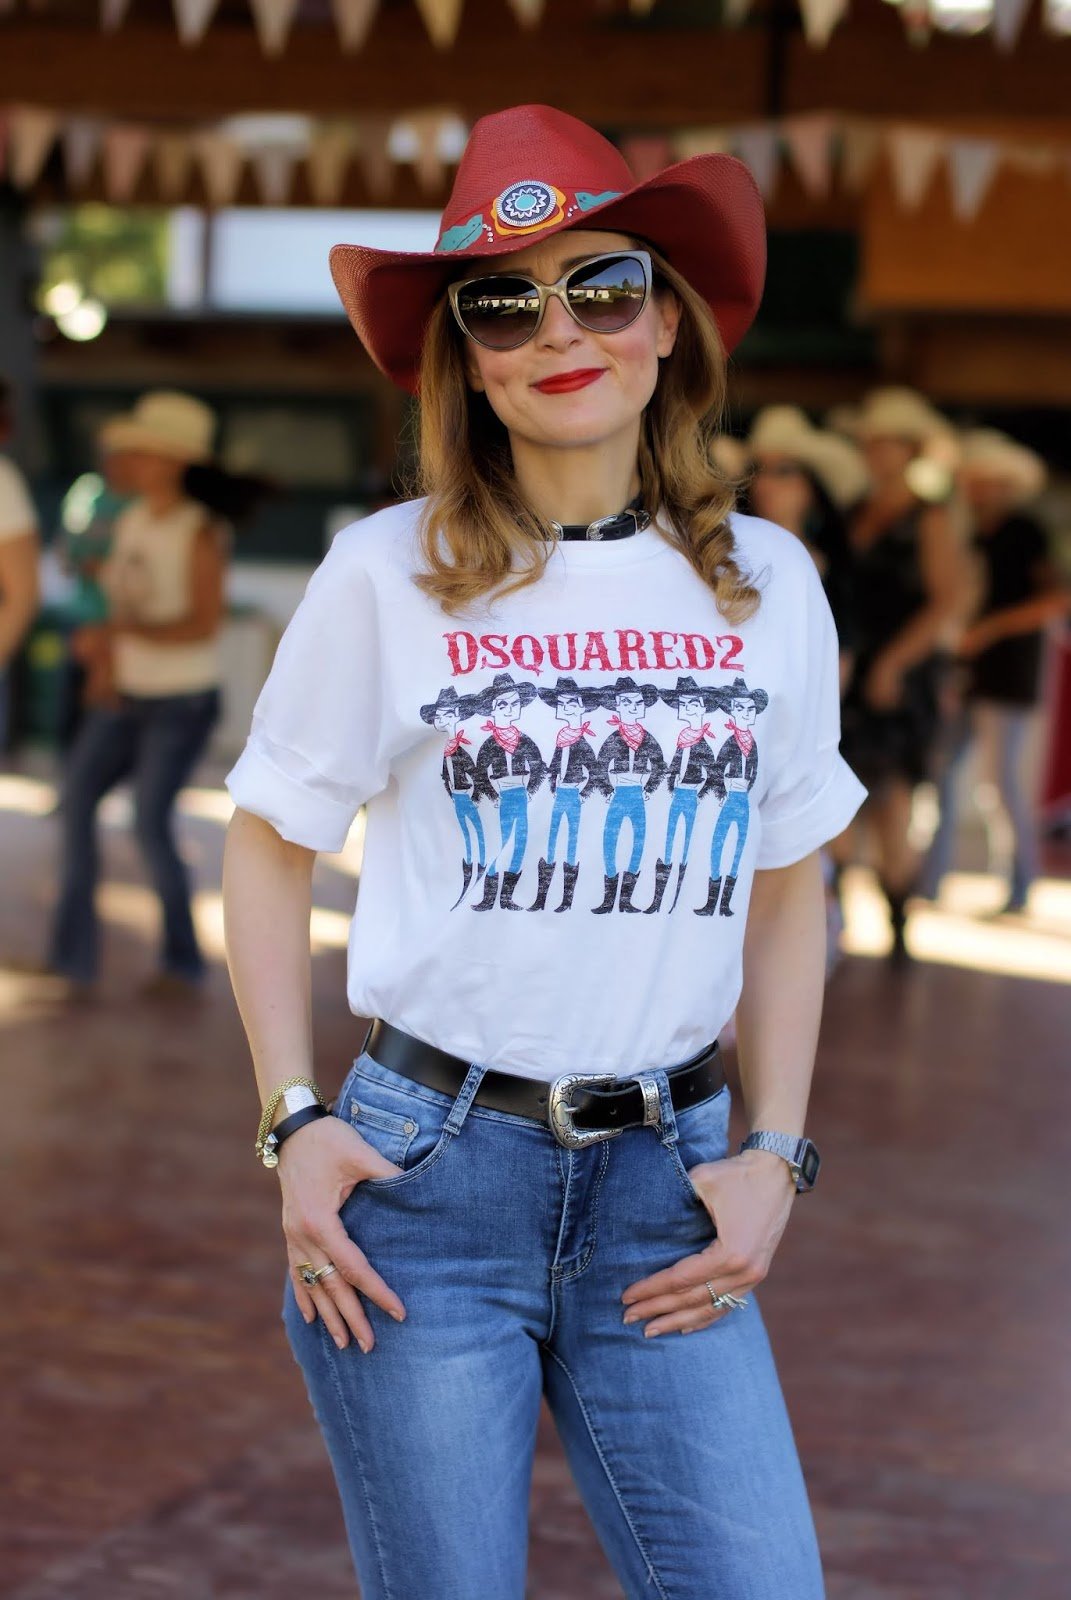 Country line dancing in a Country Western style outfit on Fashion and Cookies fashion blog, fashion blogger style